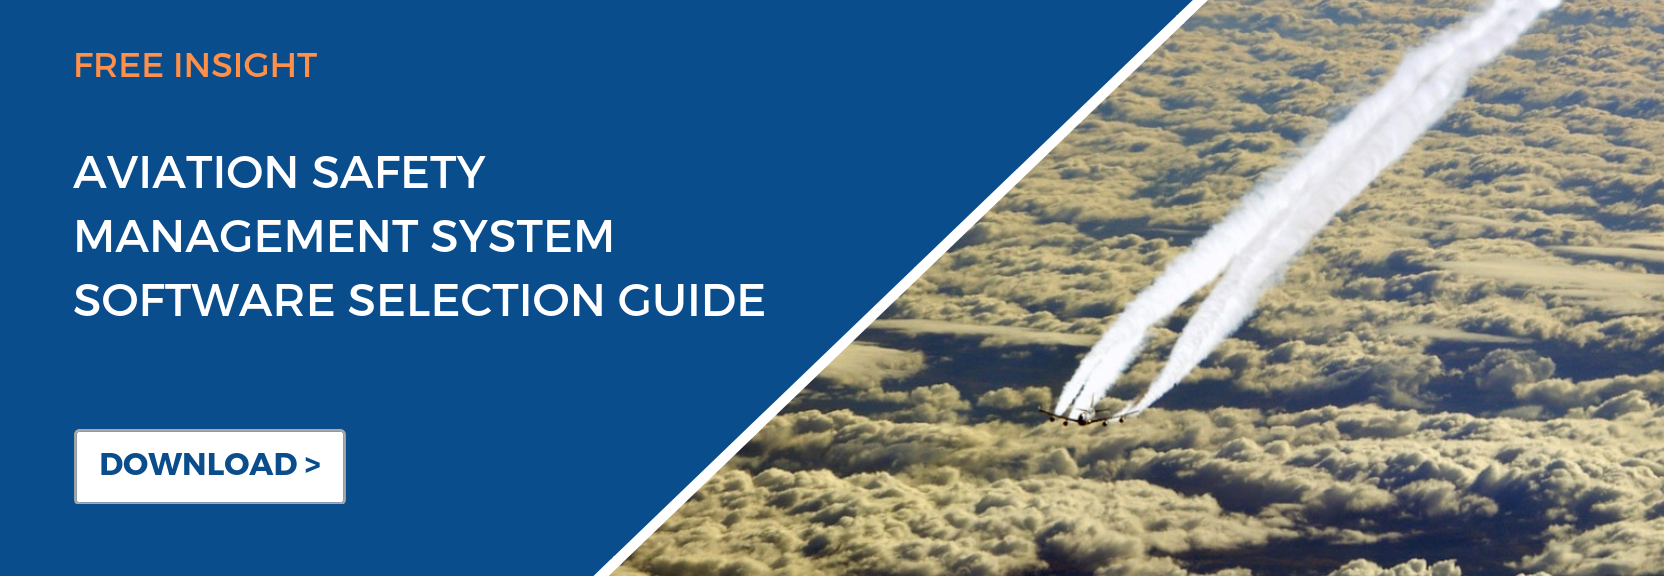 Download the Aviation Safety Management System Software Selection Guide